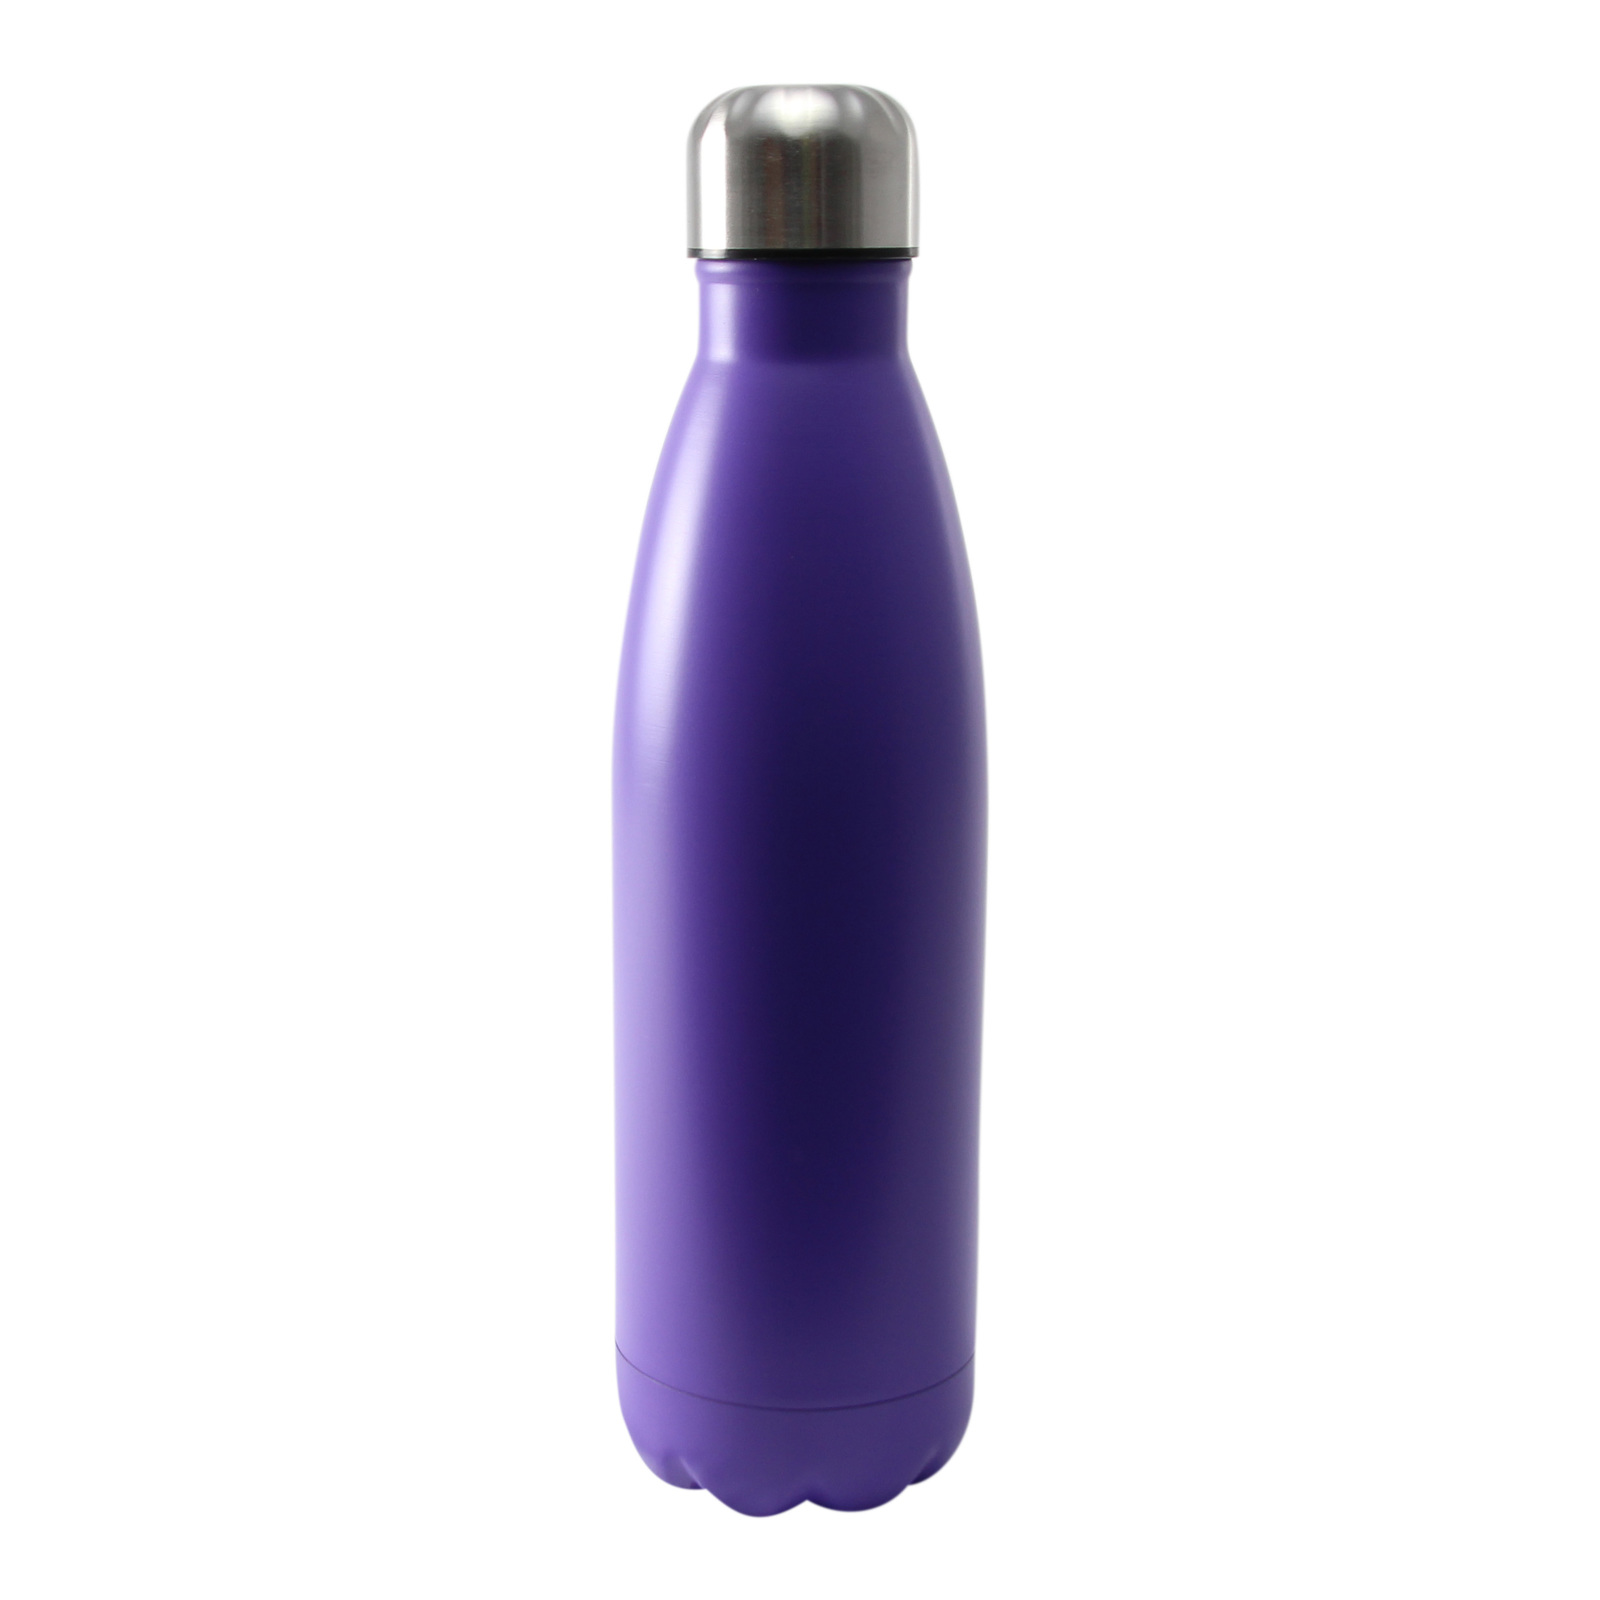 Insulated Stainless Steel Bottle 500ml Purple image